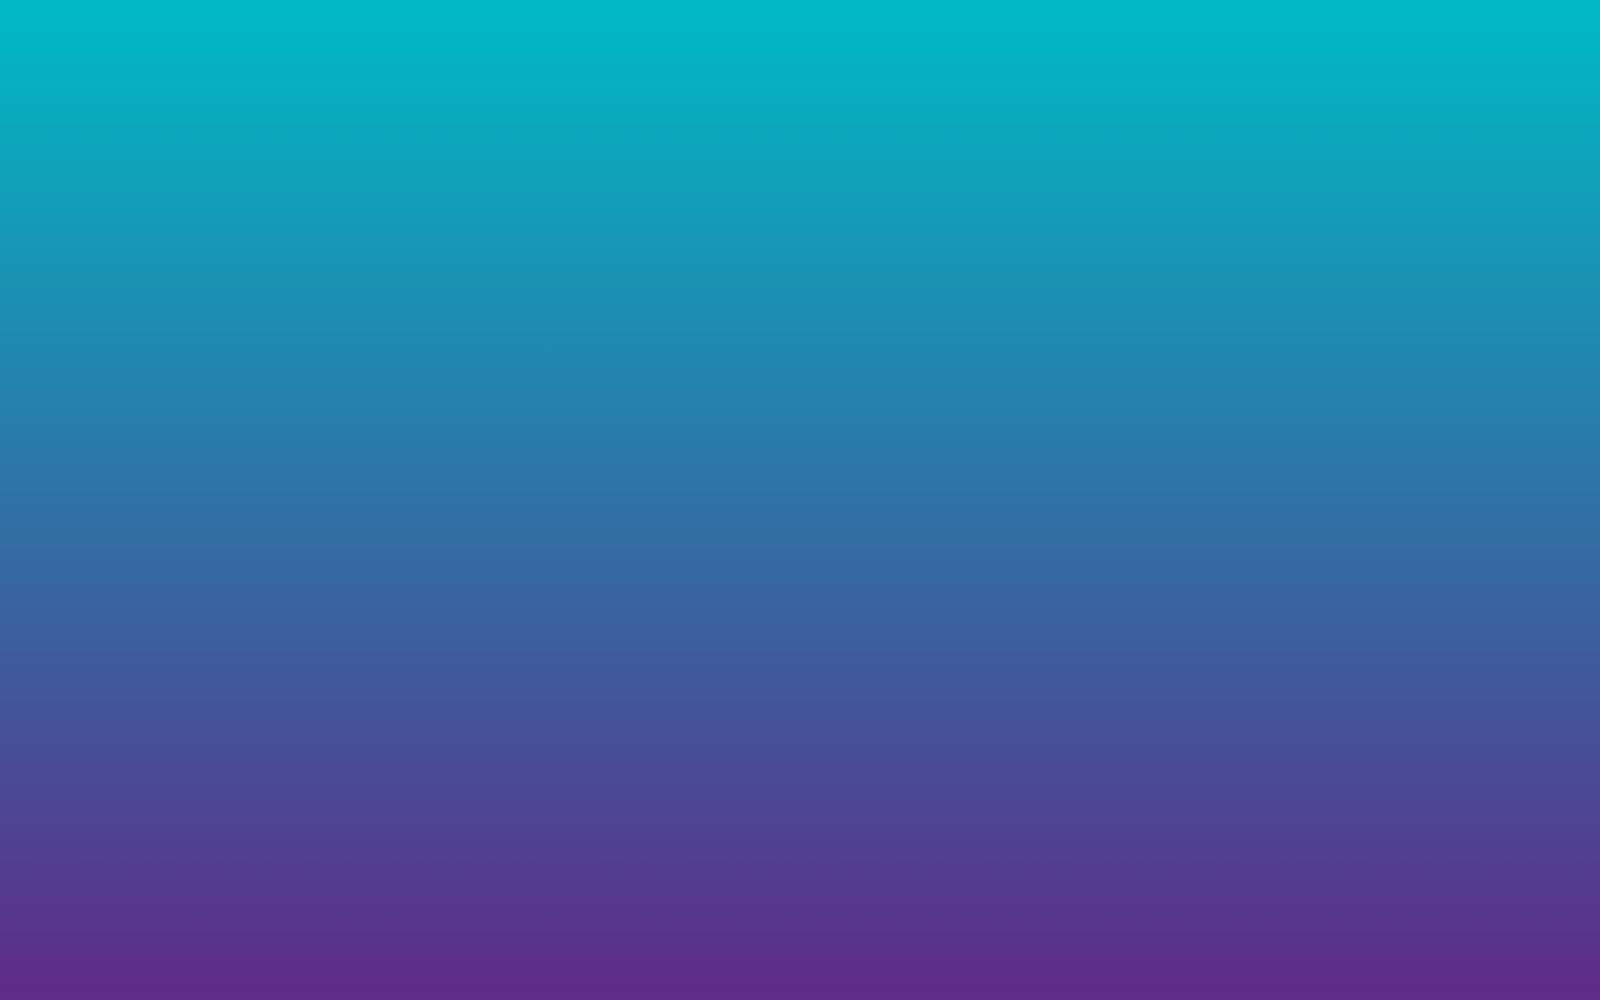 gradient coloured privacy policy banner